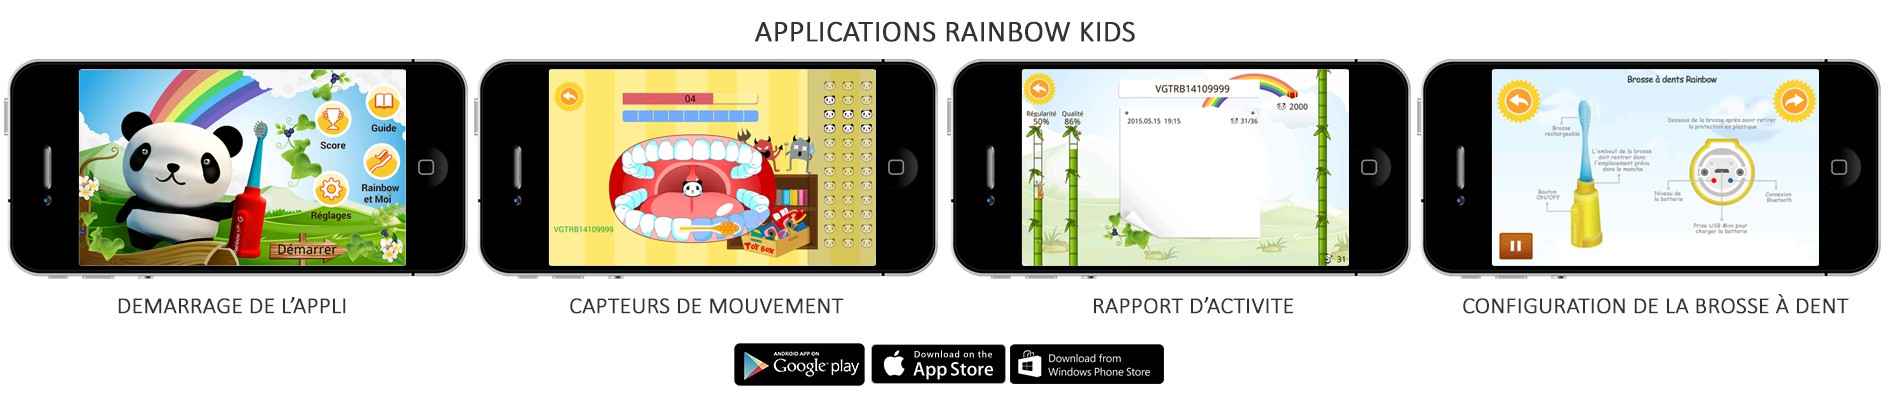 Brosse àdents connecté Rainbow Kids de vigilant application mobile